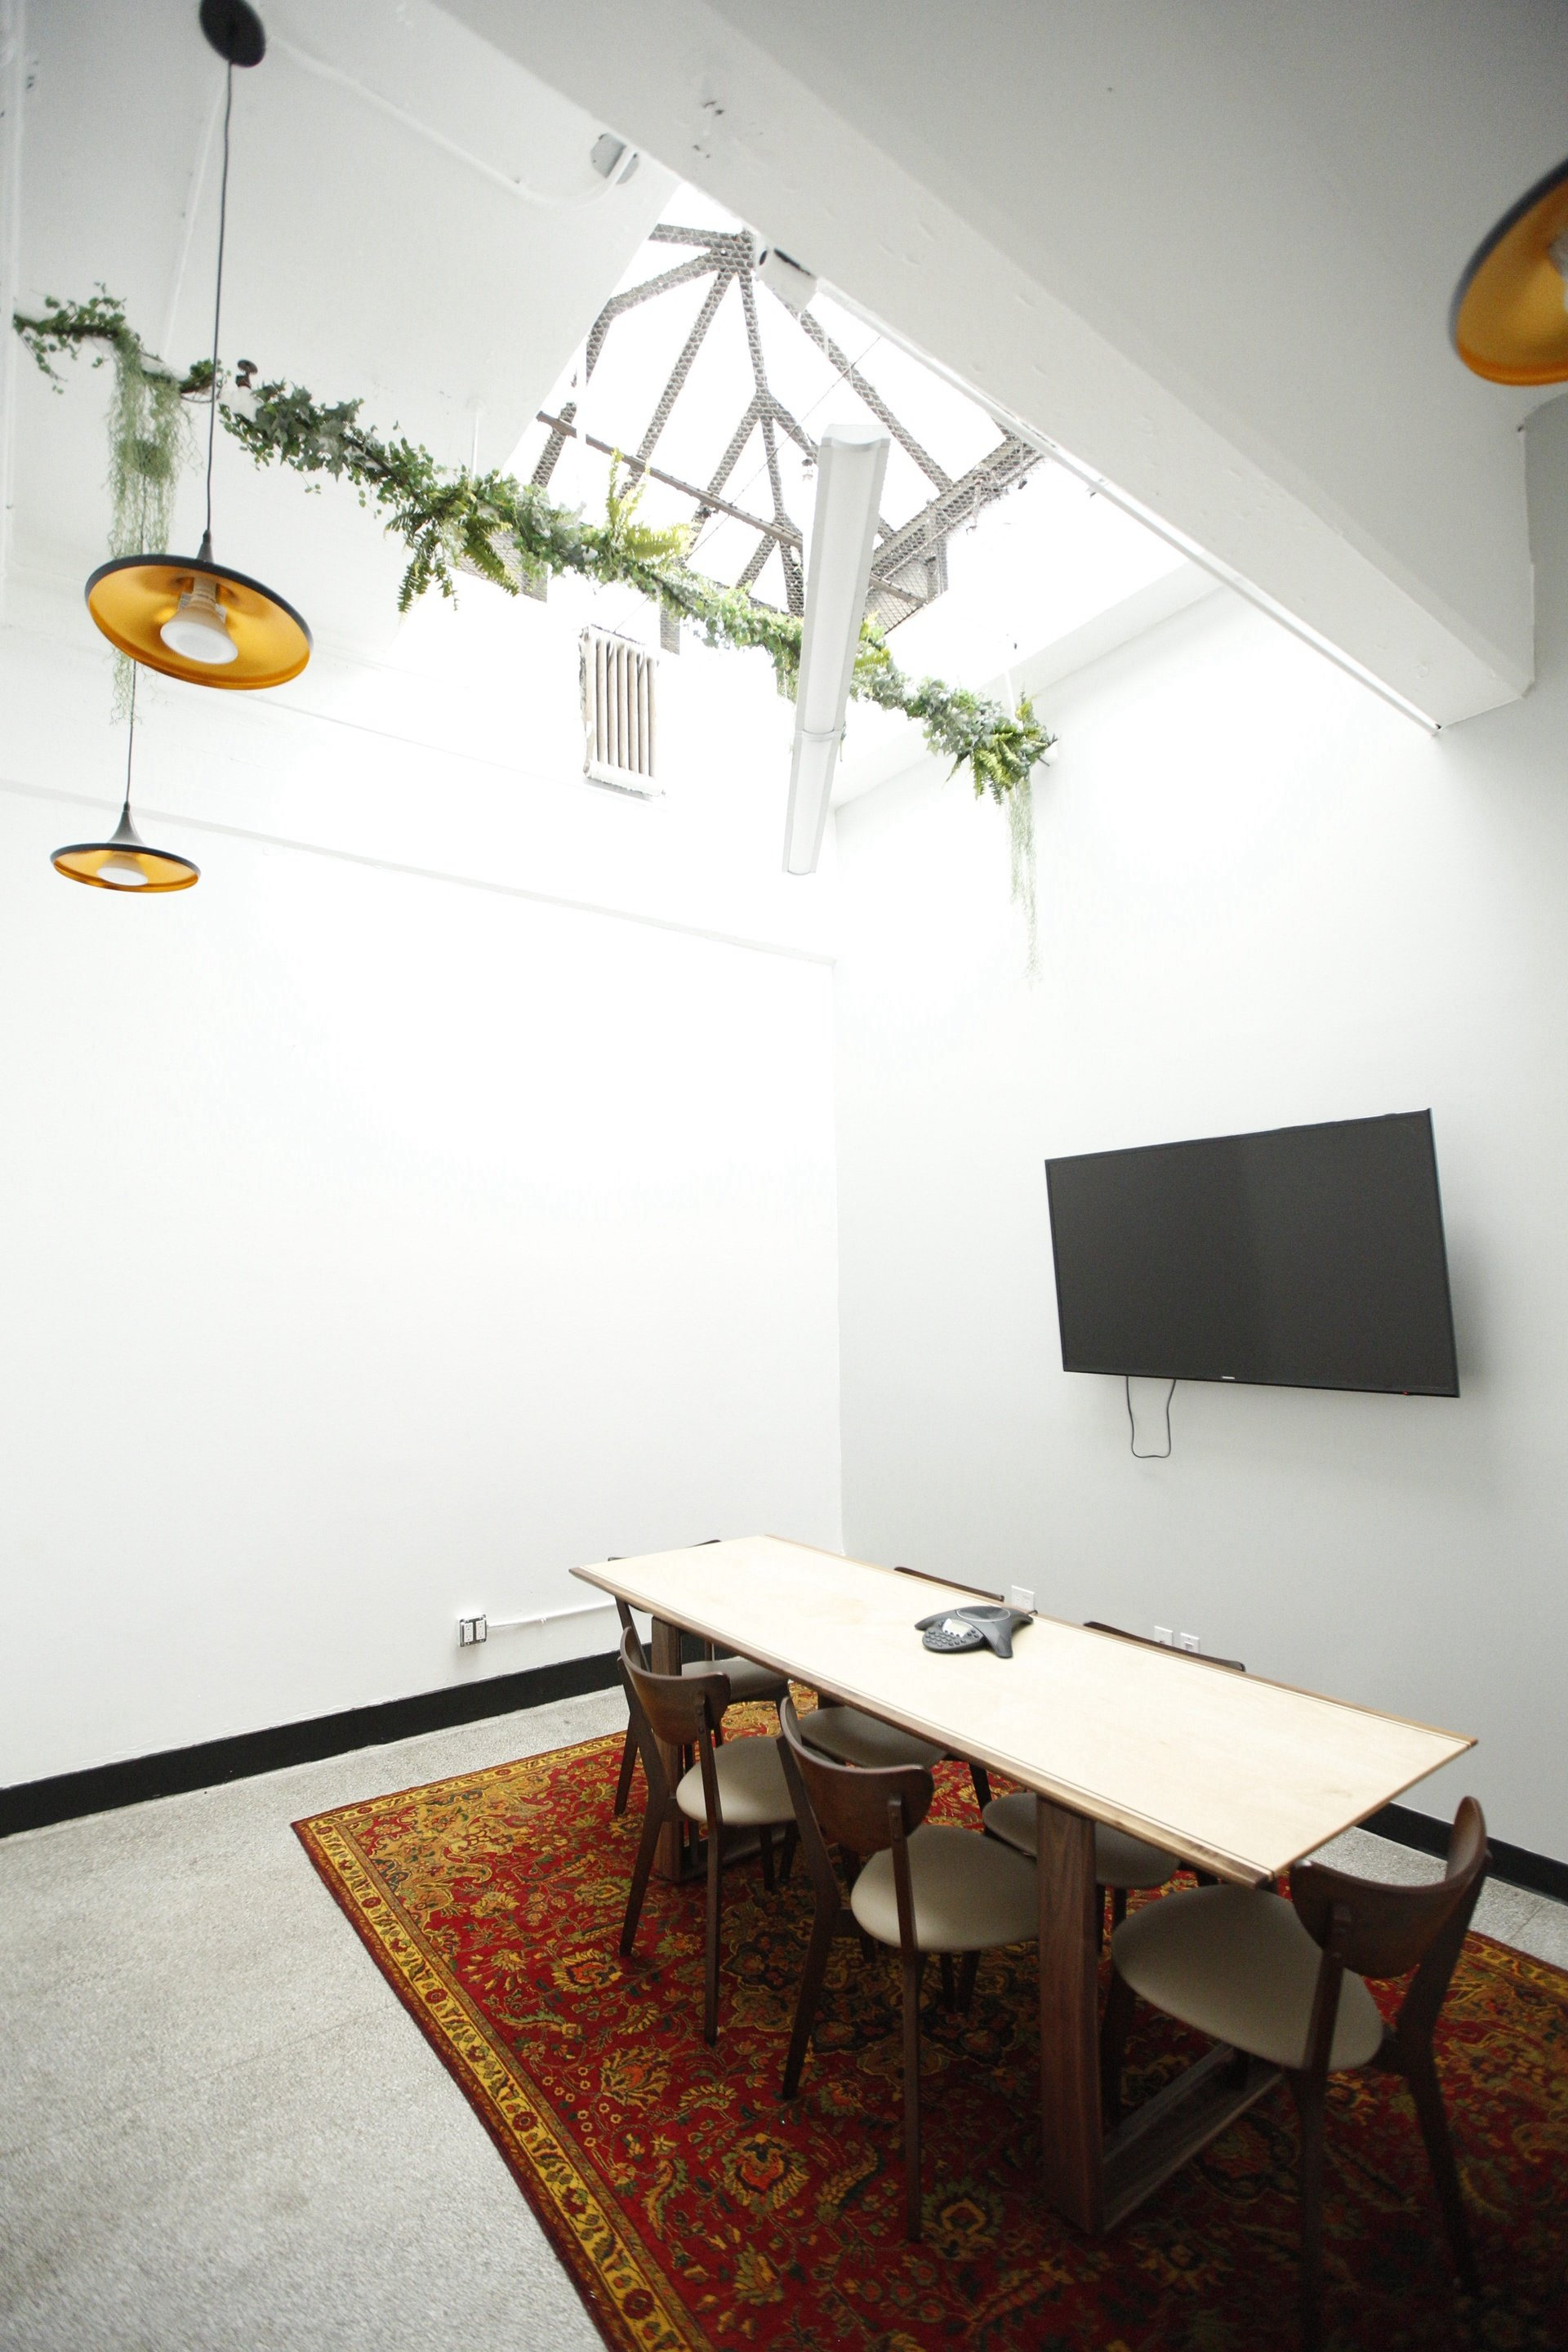 NYC conference rooms Meetingraum BKLYN Commons Skylight Conference Room image 0